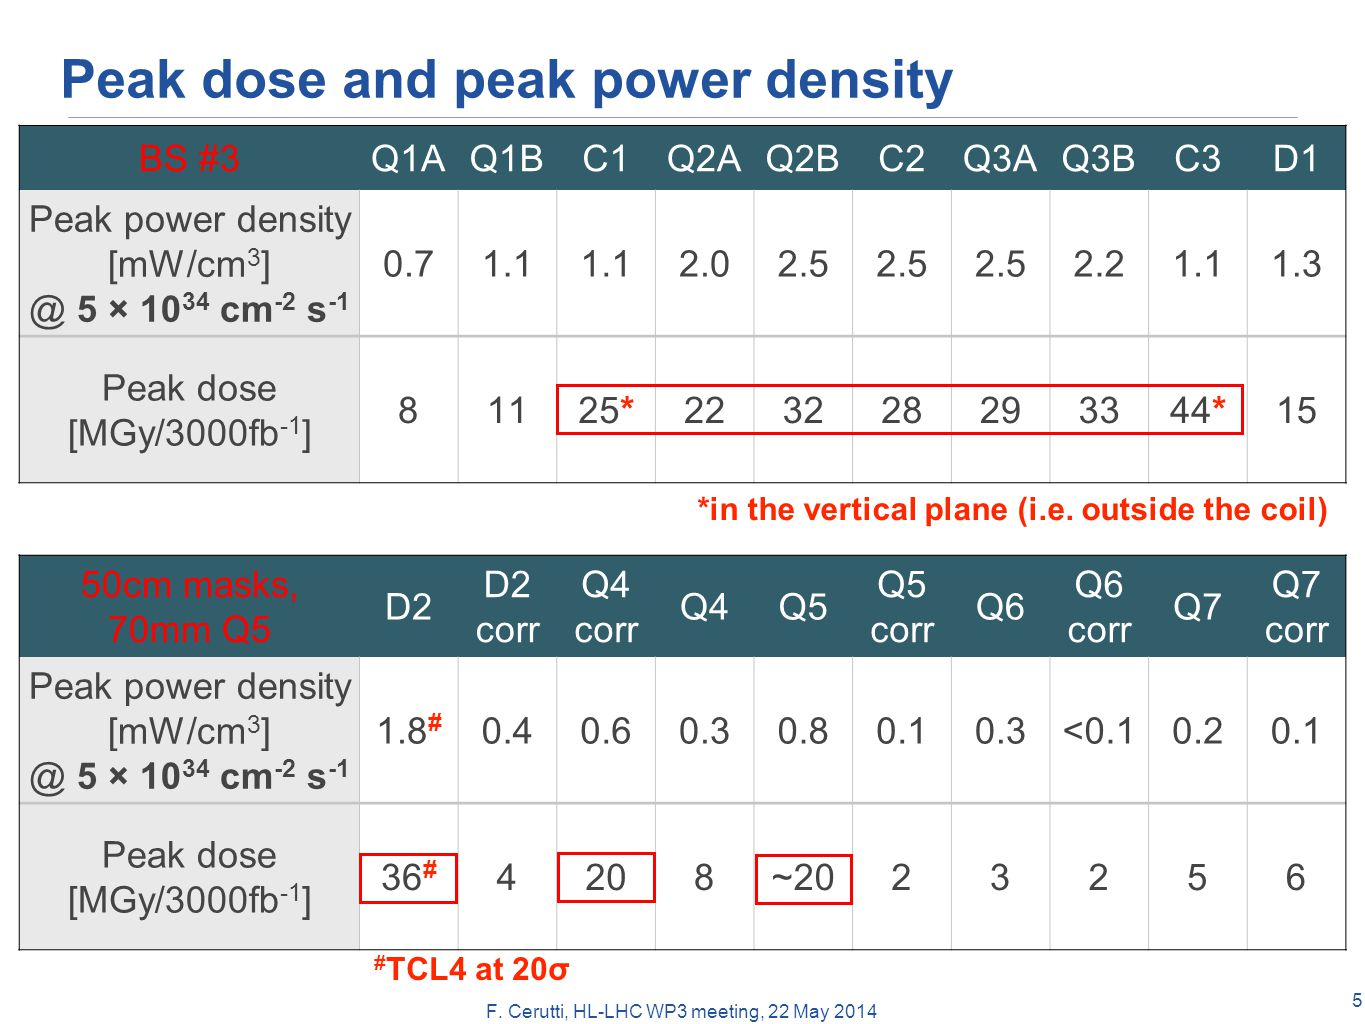 F. Cerutti, HL-LHC WP3 meeting, 22 May 2014 Peak dose and peak power density 5 BS #3Q1AQ1BC1Q2AQ2BC2Q3AQ3BC3D1 Peak power density [mW/cm 3 ] @ 5 × 10